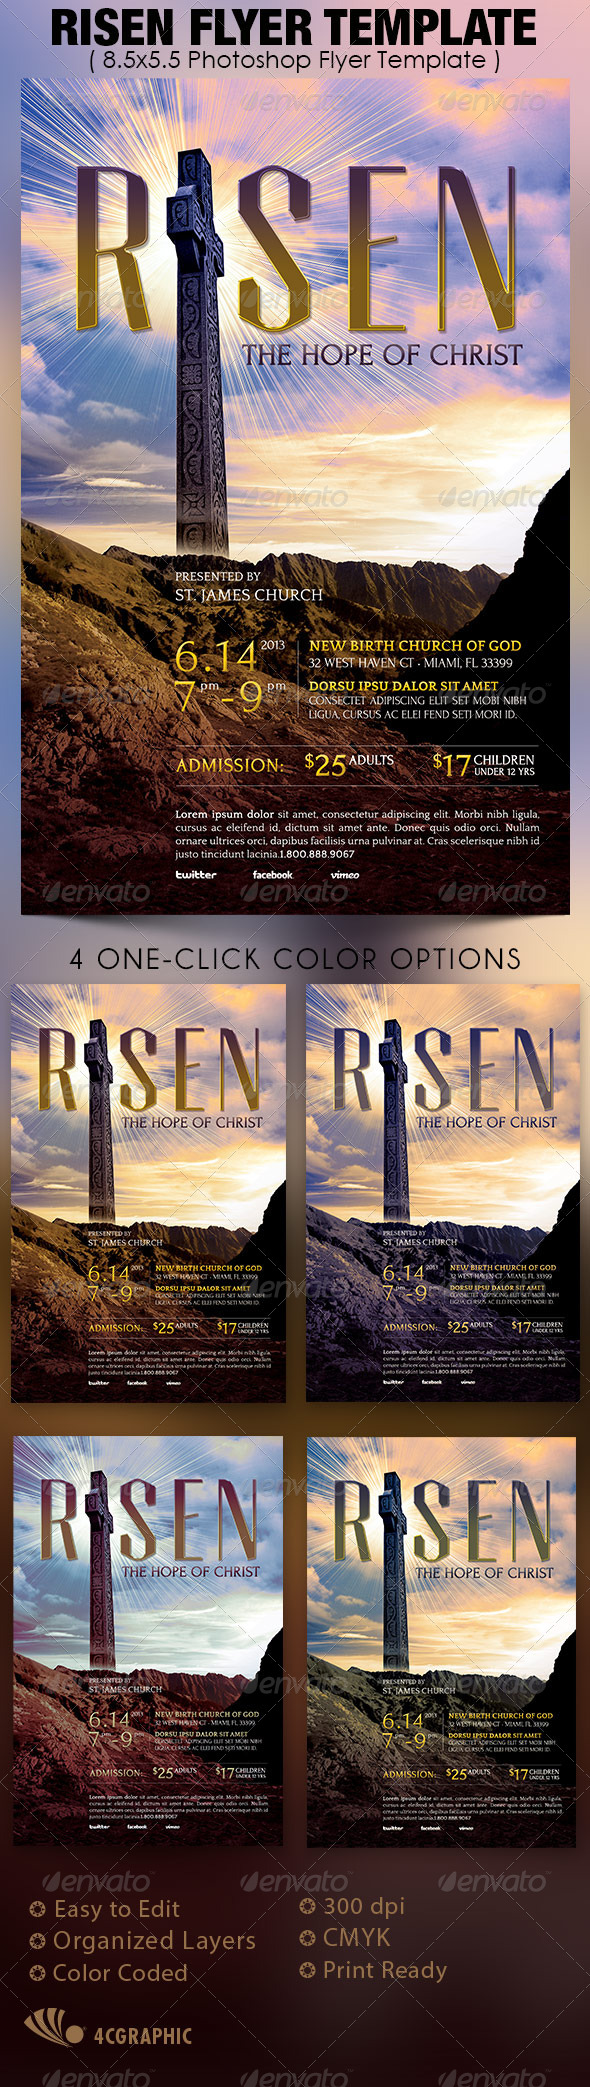 Risen Flyer Template - Church Flyers